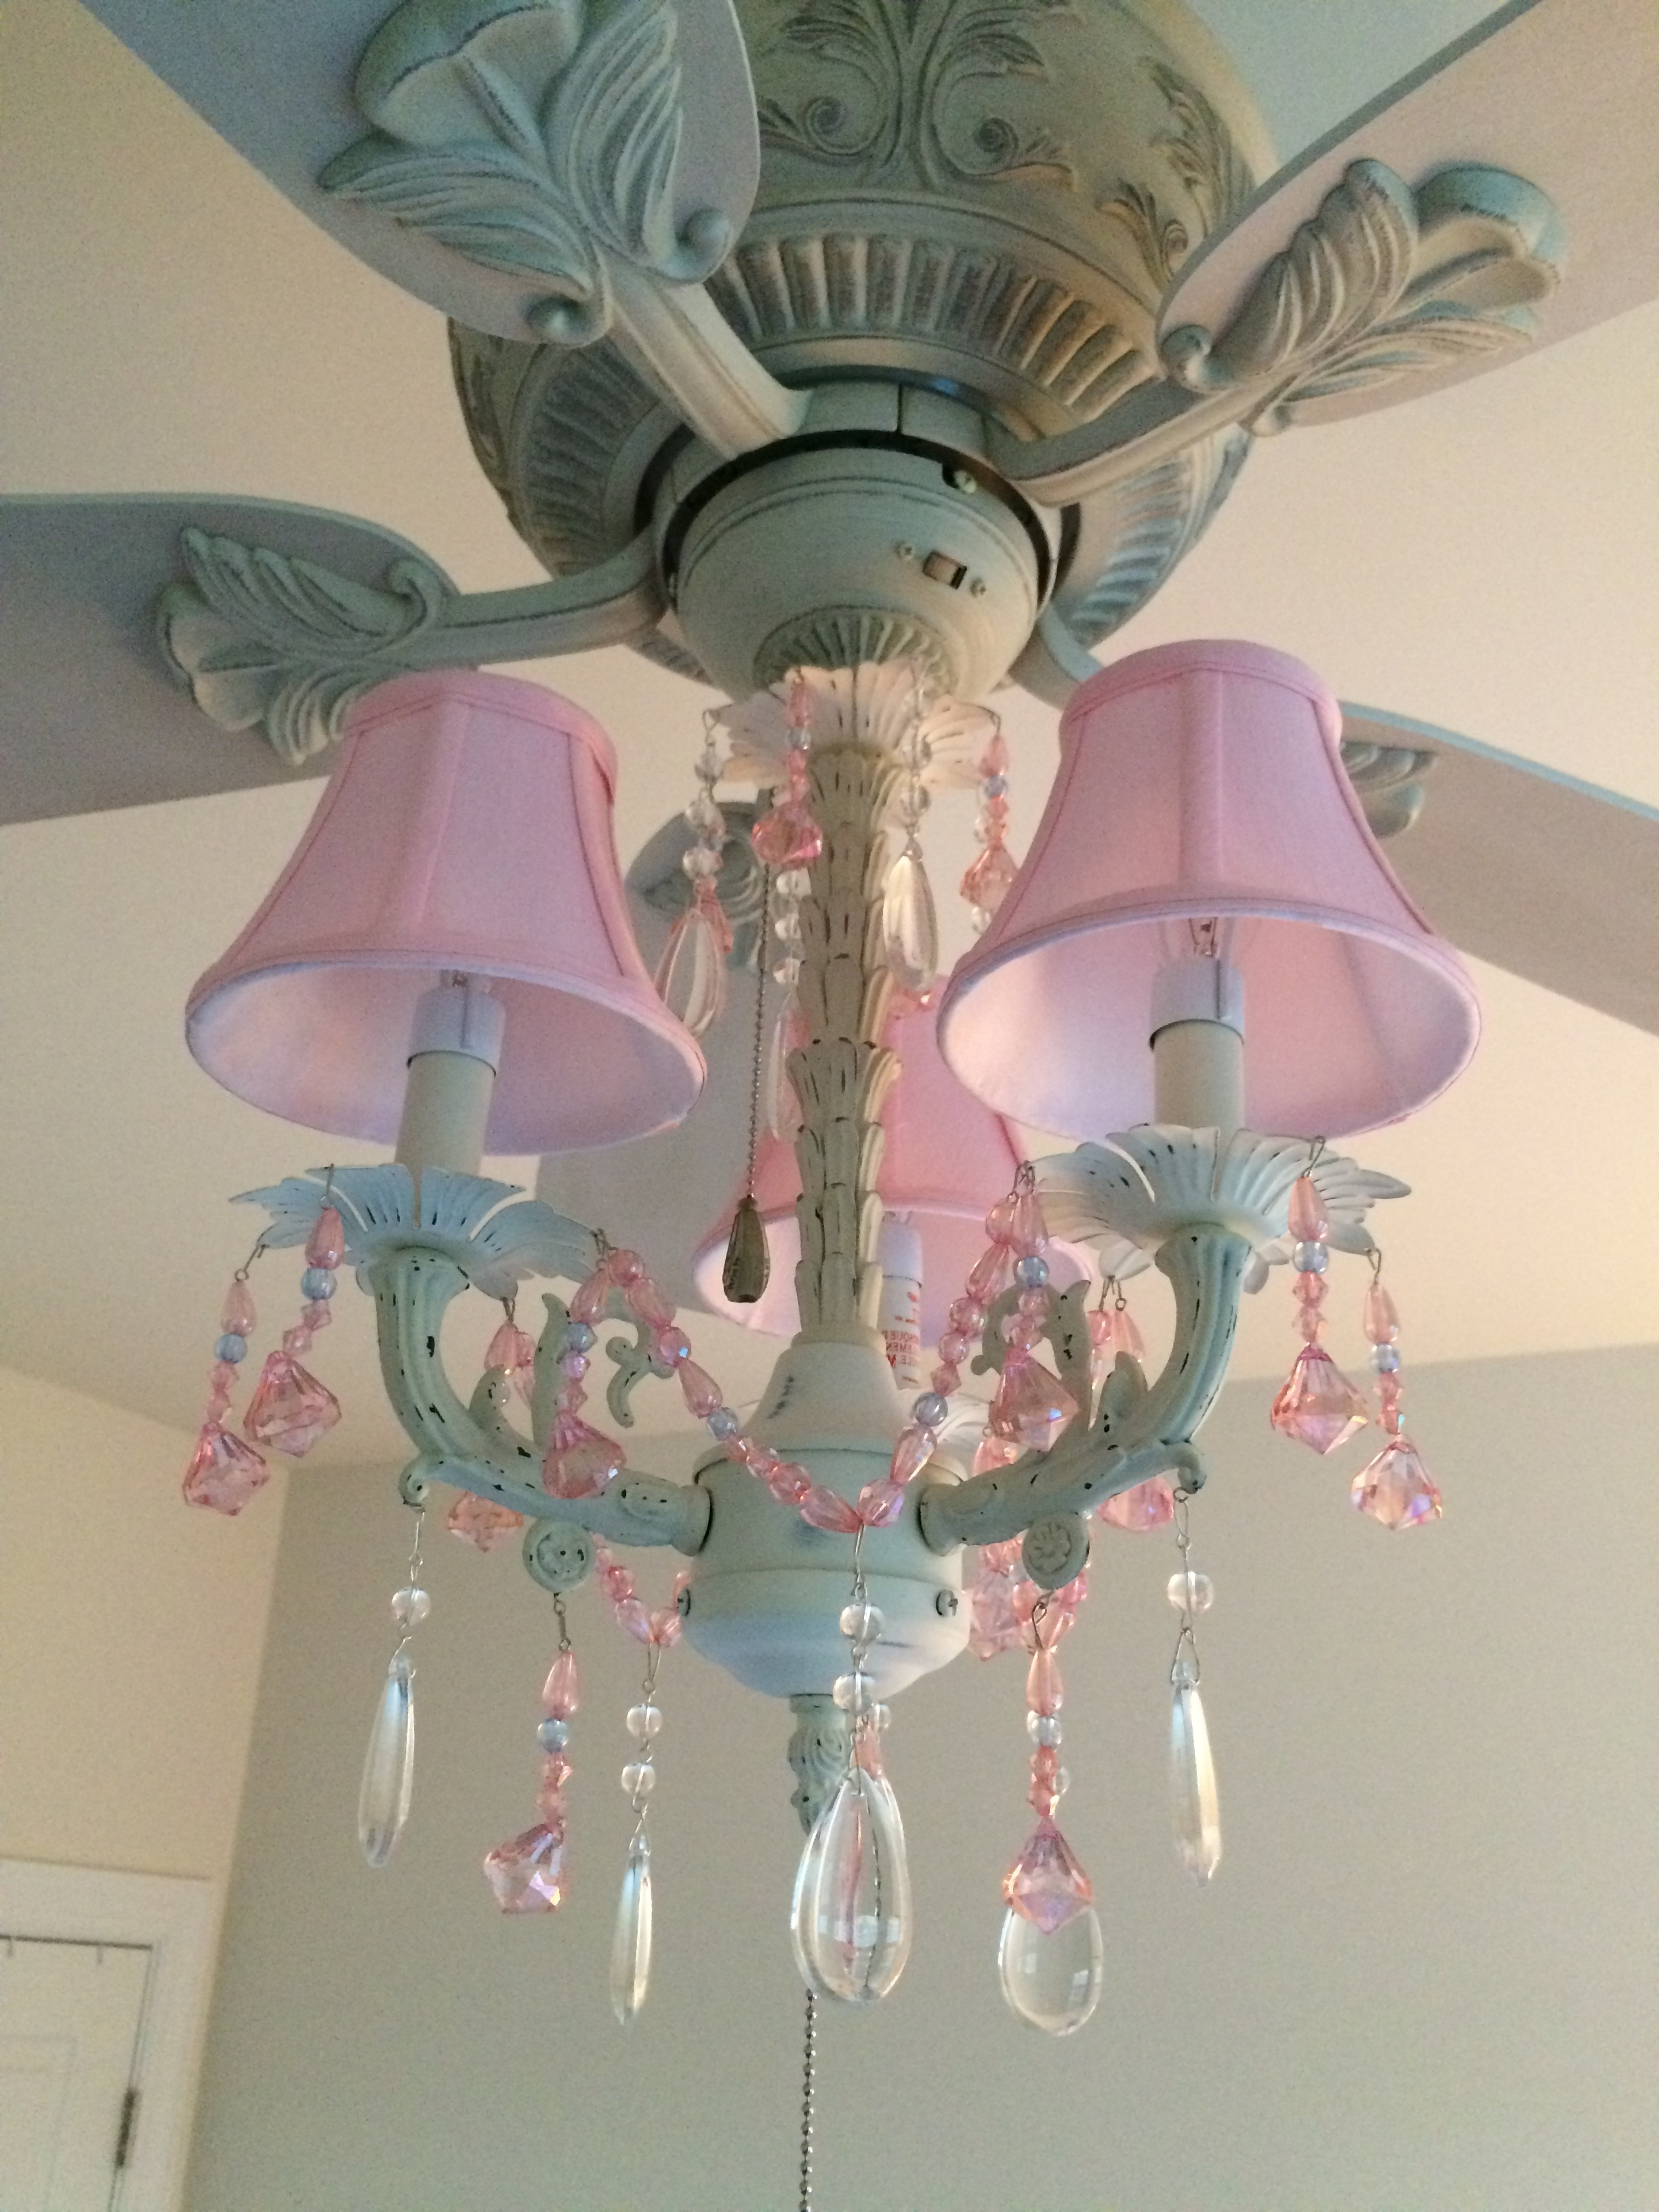 Latest Pink Chandelier Ceiling Fan And Light Kit (Fandelier) – Perfect For Inside Turquoise And Pink Chandeliers (View 4 of 20)